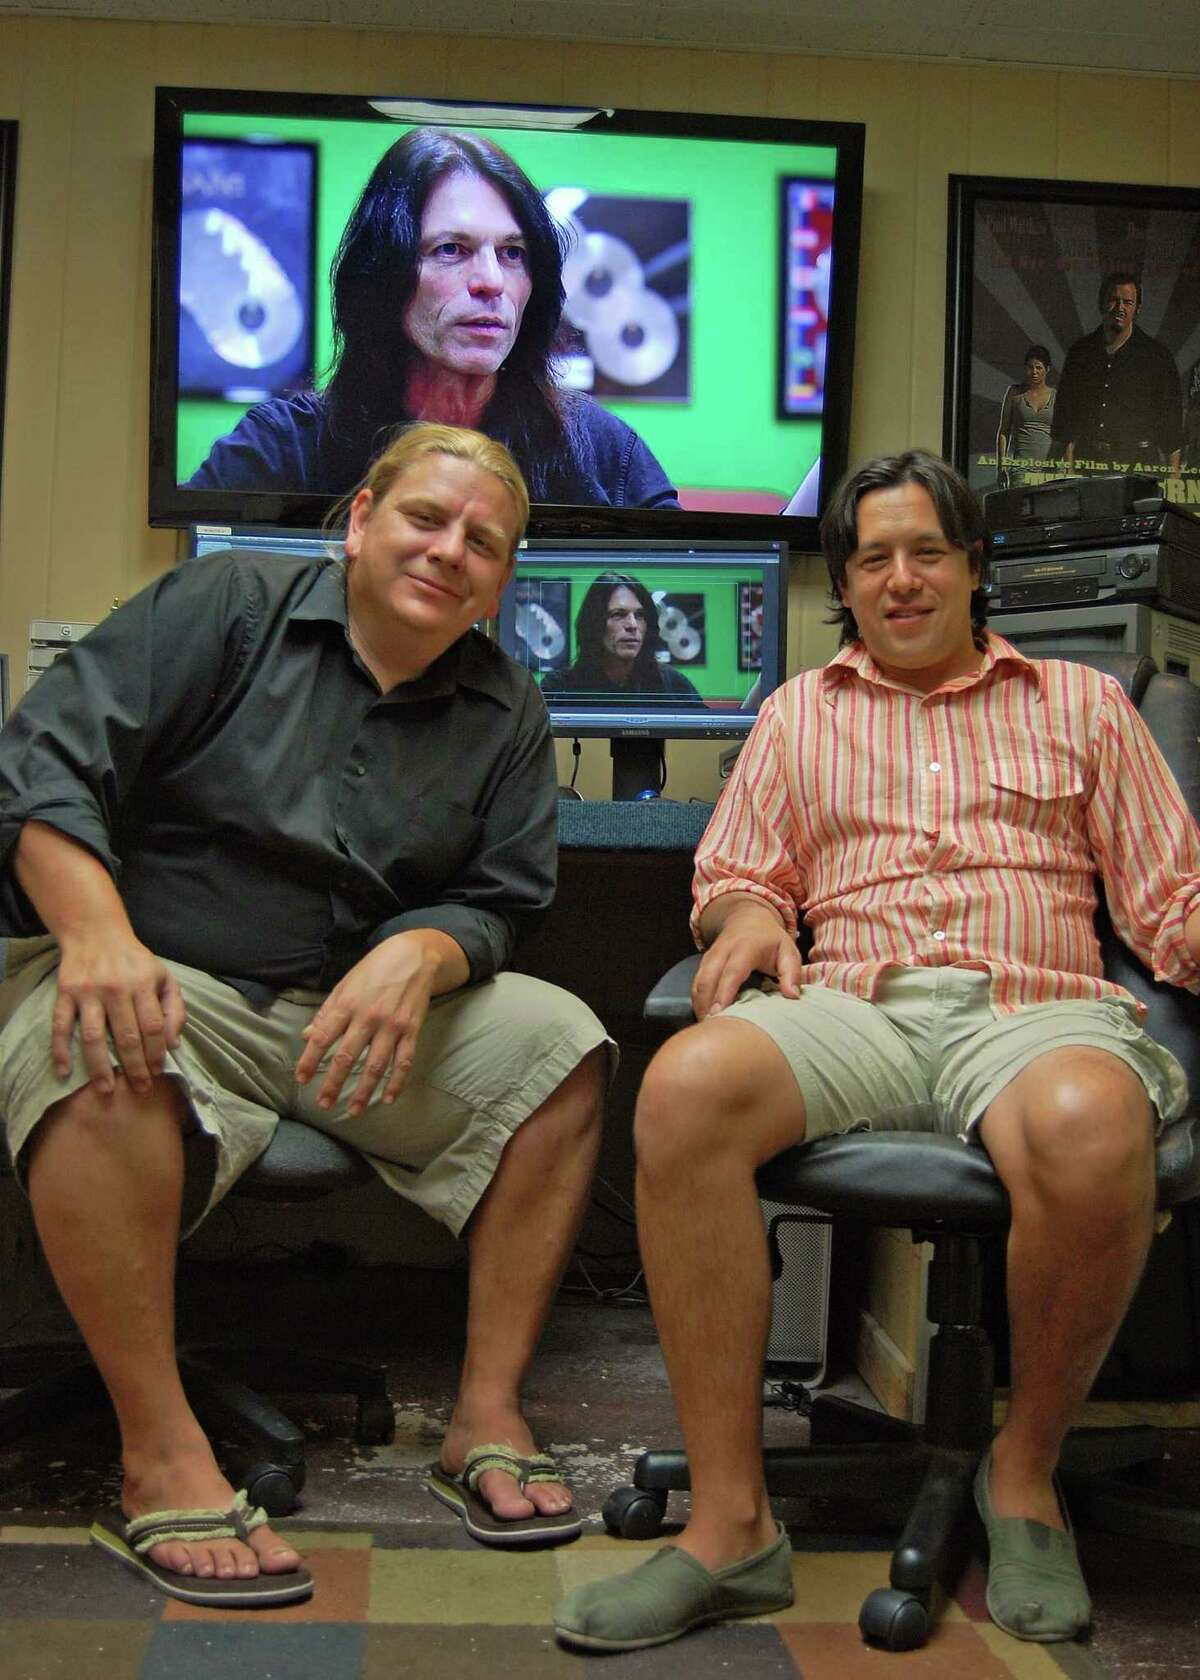 Aaron Lee Lopez (left) and Brandon Keropian Olmos co-founded Mutt Productions.